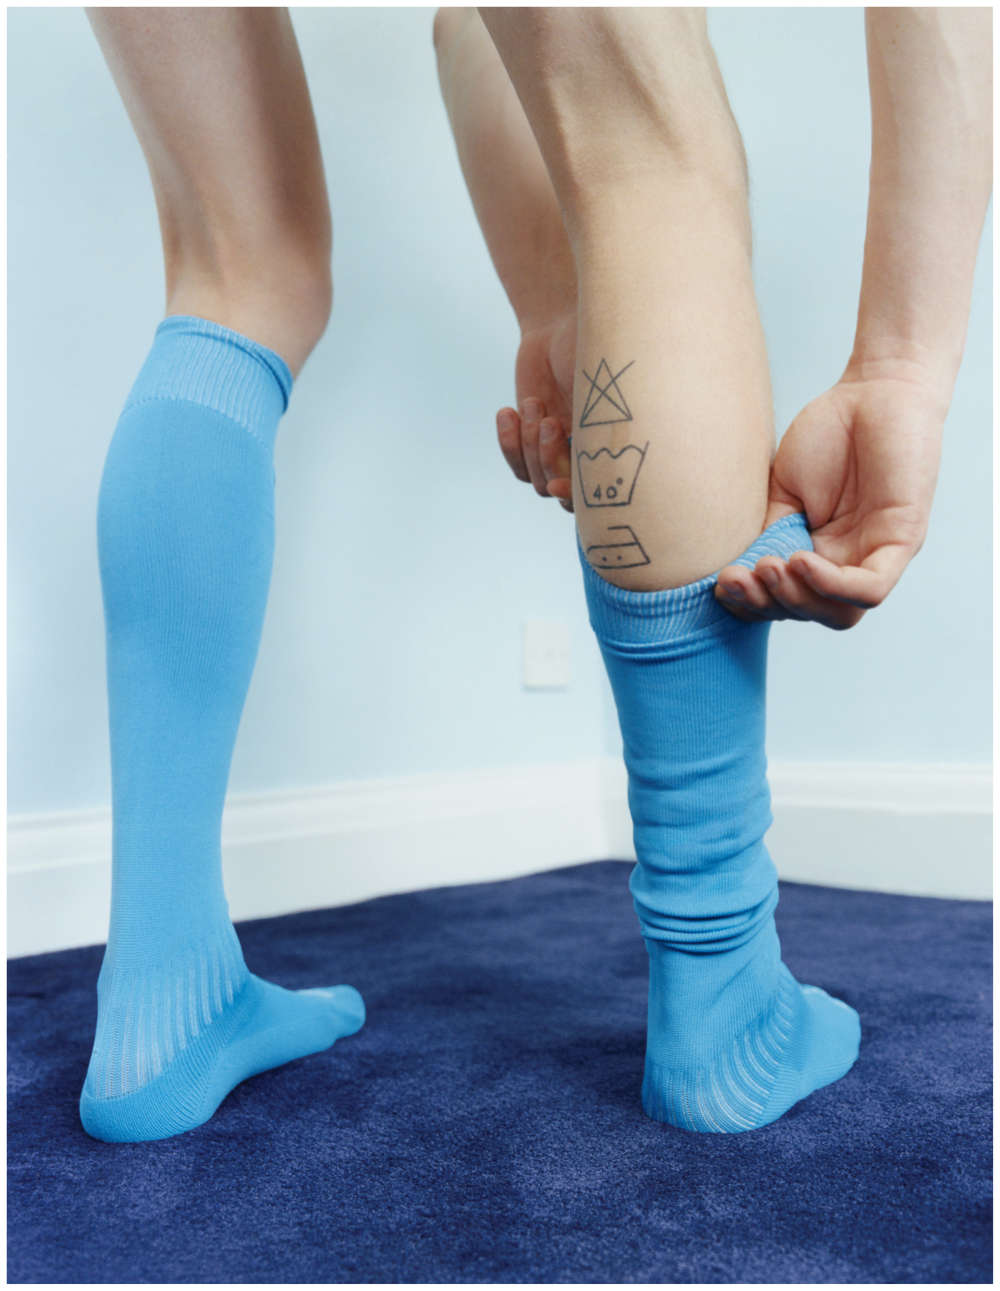 Coco Capitán, Boy in Socks, 2017 © Coco Capitán, courtesy of the artist